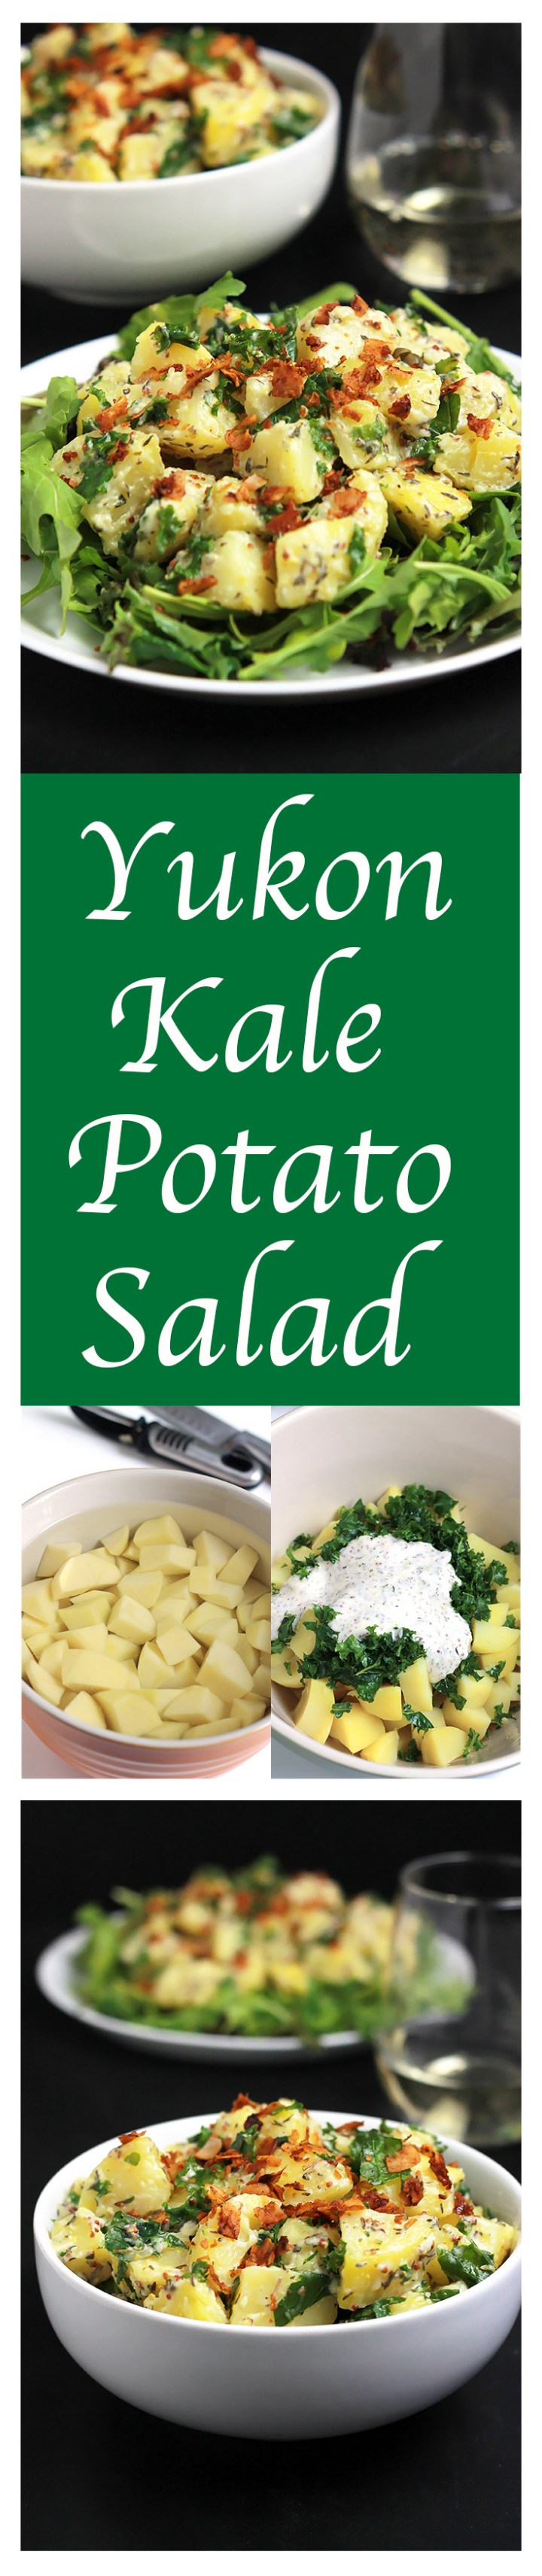 Yukon Kale Potato Salad-Sweet golden potatoes and chopped kale tossed together in a creamy dressing, garnished with a sprinkling of coconut bacon. A delicious twist to a traditional summer side for the vegetarians or vegans in the crowd.